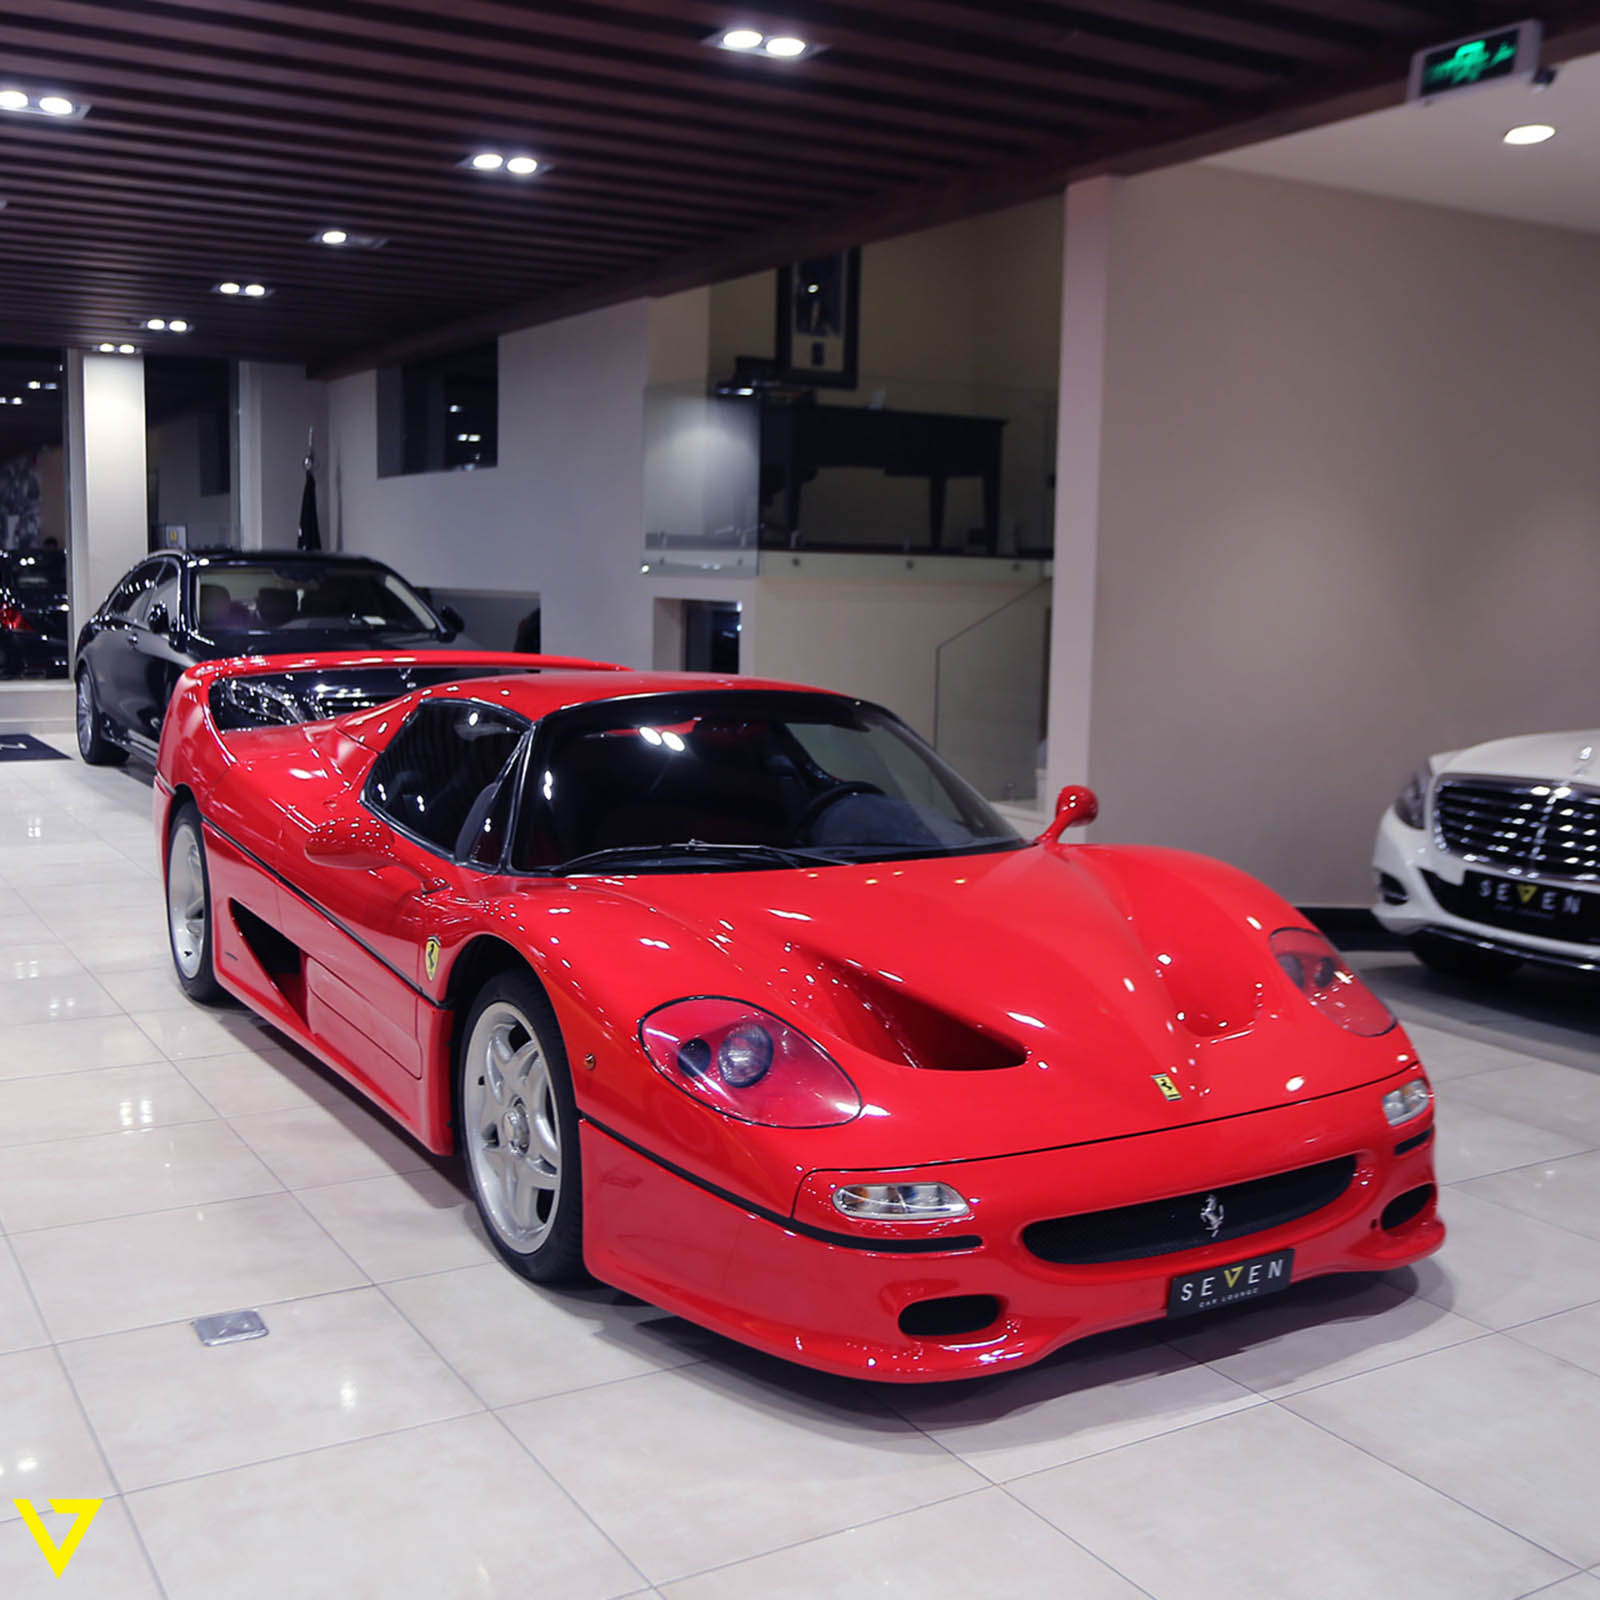 Saudi Dealership Has All Four Of Ferrari's Flagship